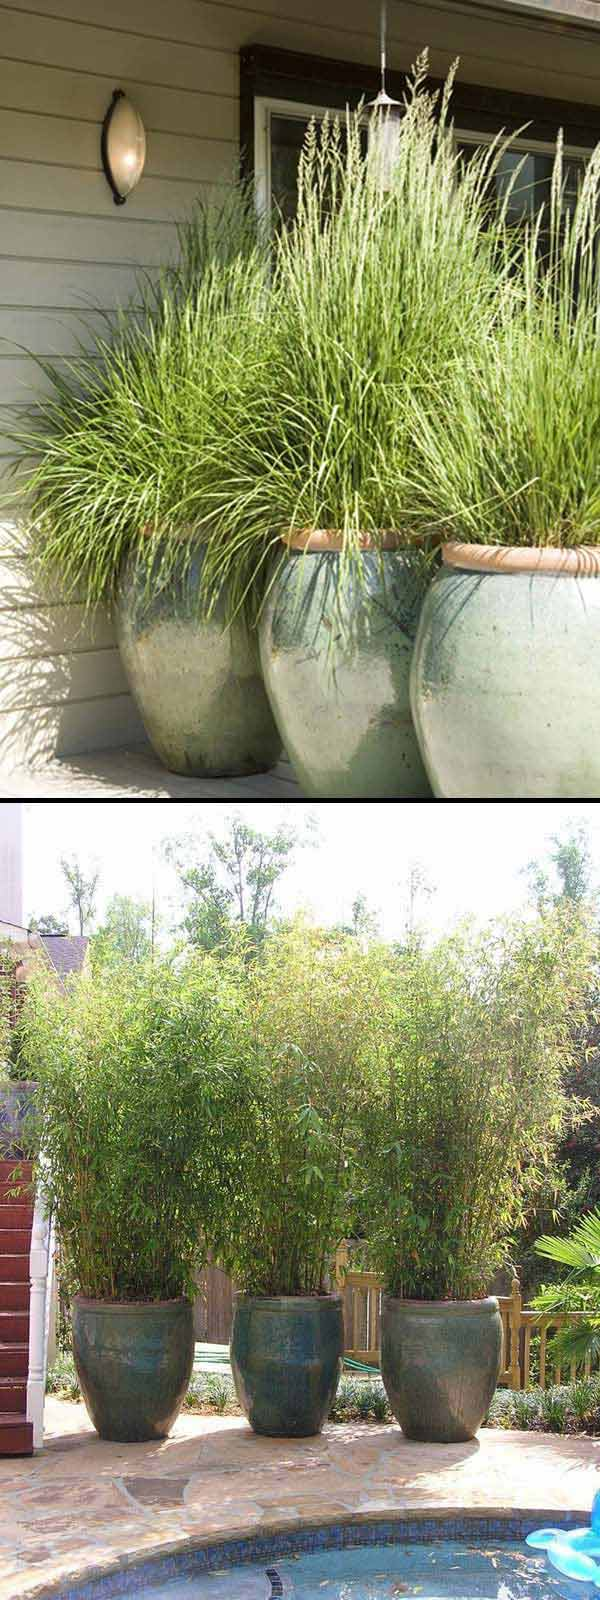 giant-pot-for-garden-yard-woohome-4